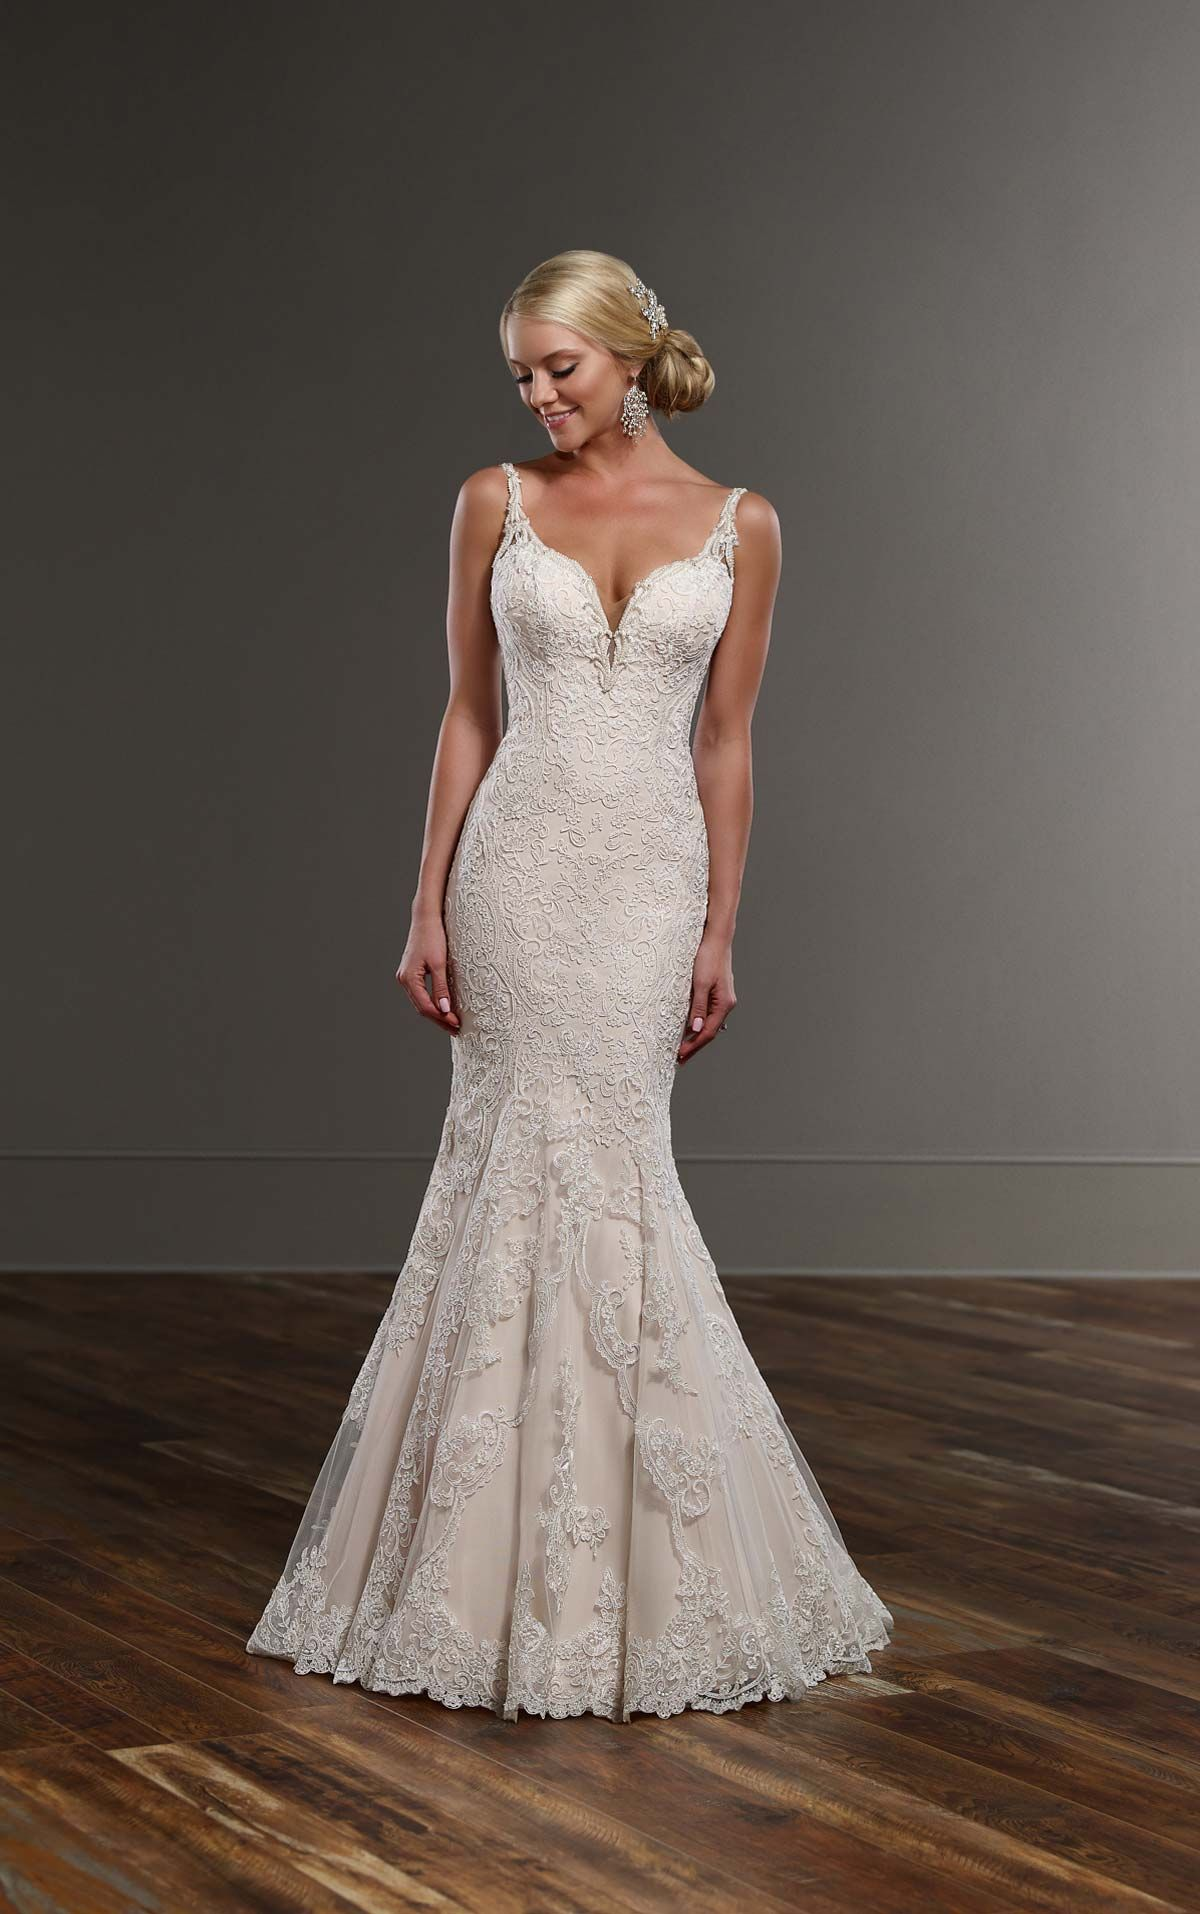 This Lace Over Matte Side Re Satin Fit And Flare Designer Wedding Gown From Martina Liana Offers A Y Deep V Neck Flirty K Boo Back